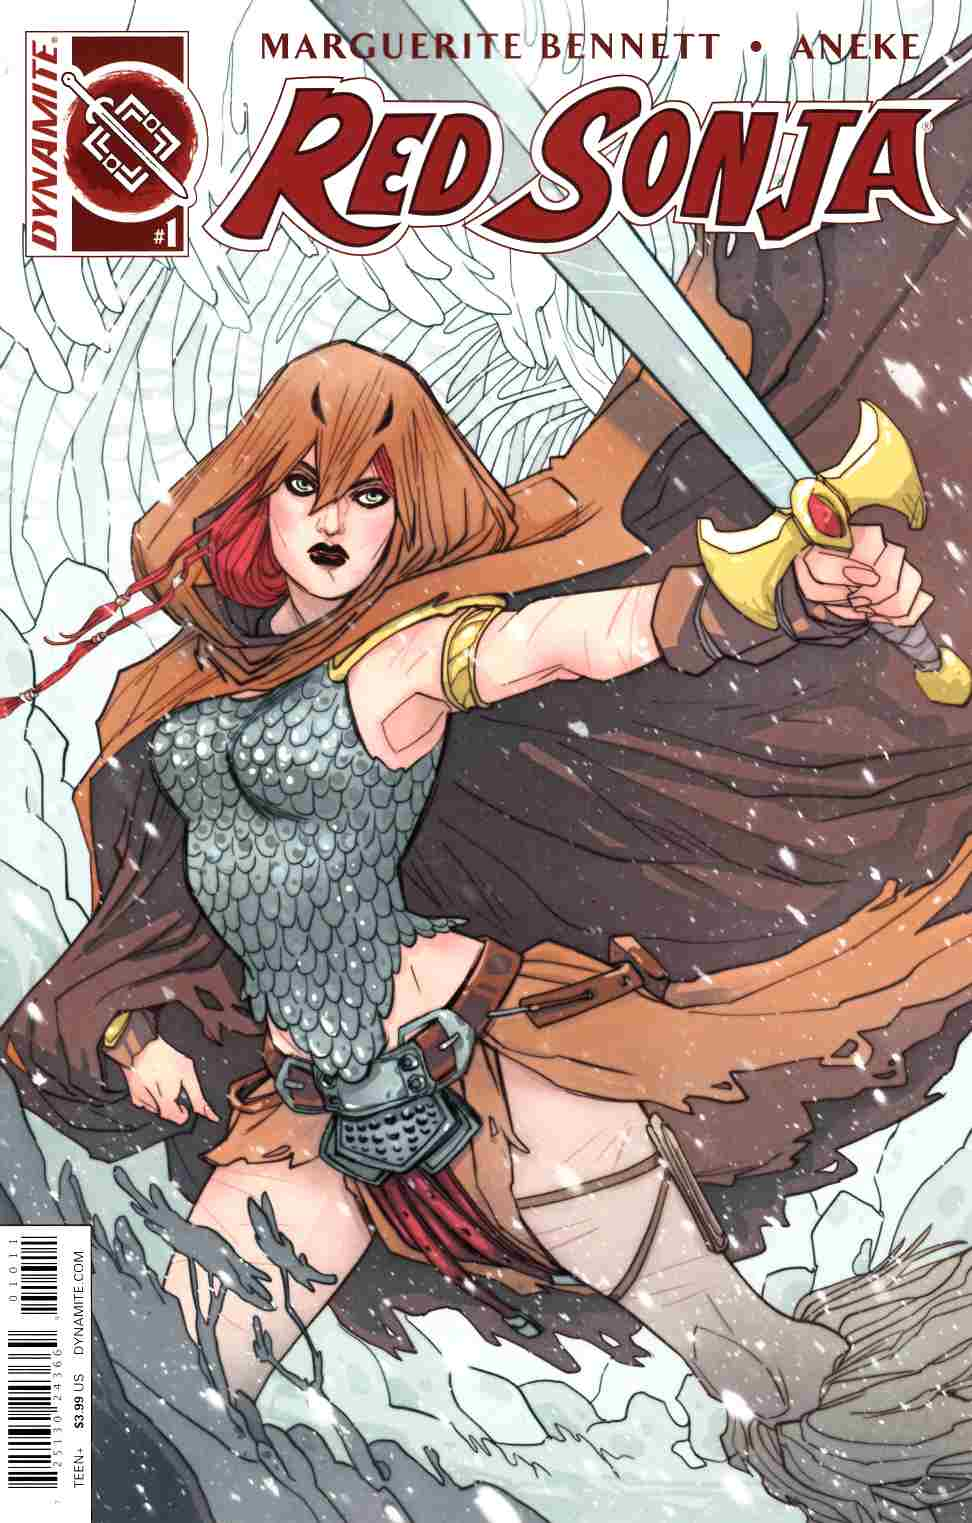 Red Sonja Volume 3 #1 Cover A- Sauvage THUMBNAIL